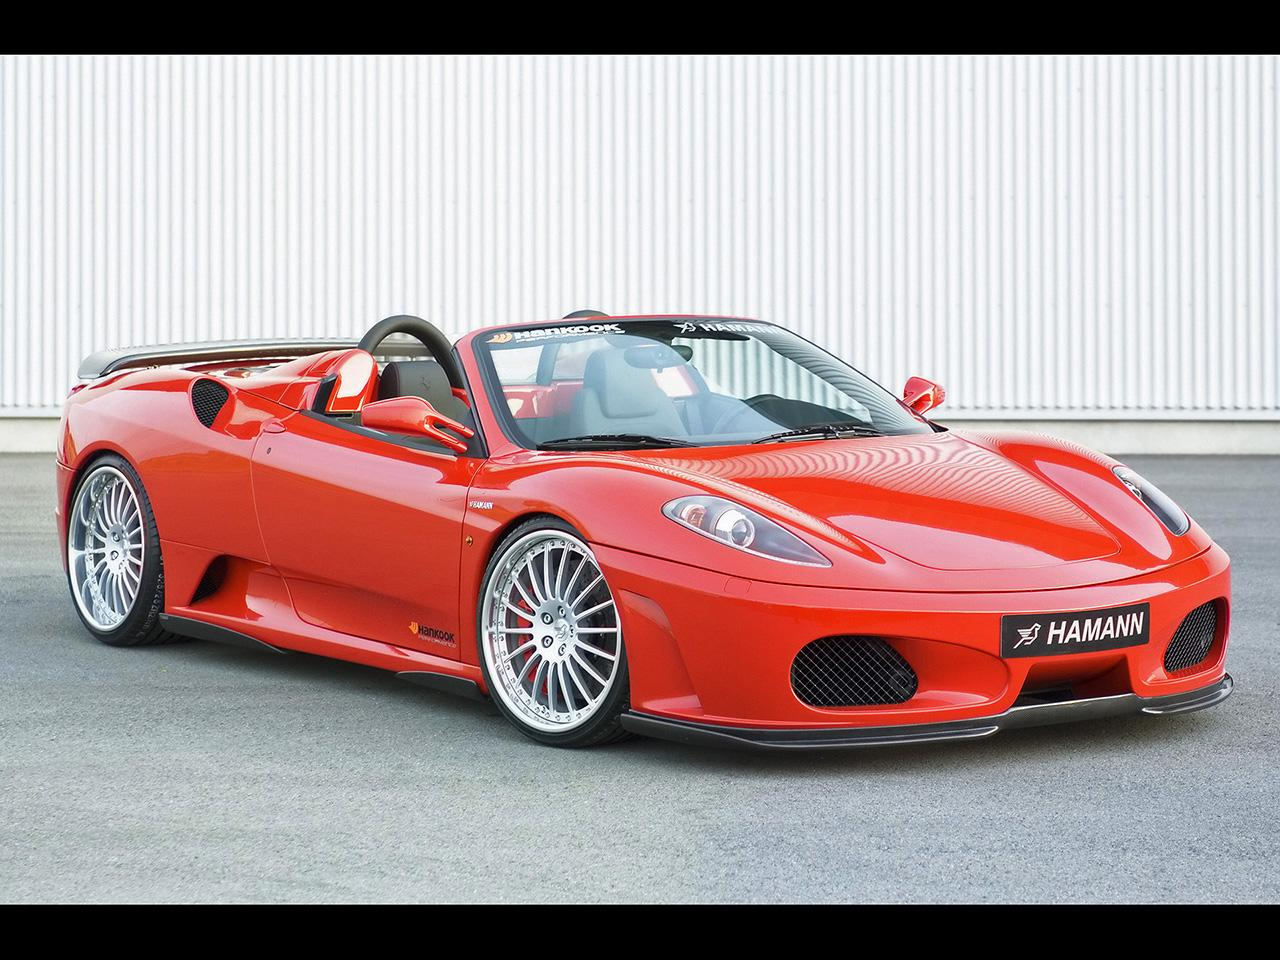 Build A Nissan >> World Of Cars: Ferrari f430 spider wallpaper